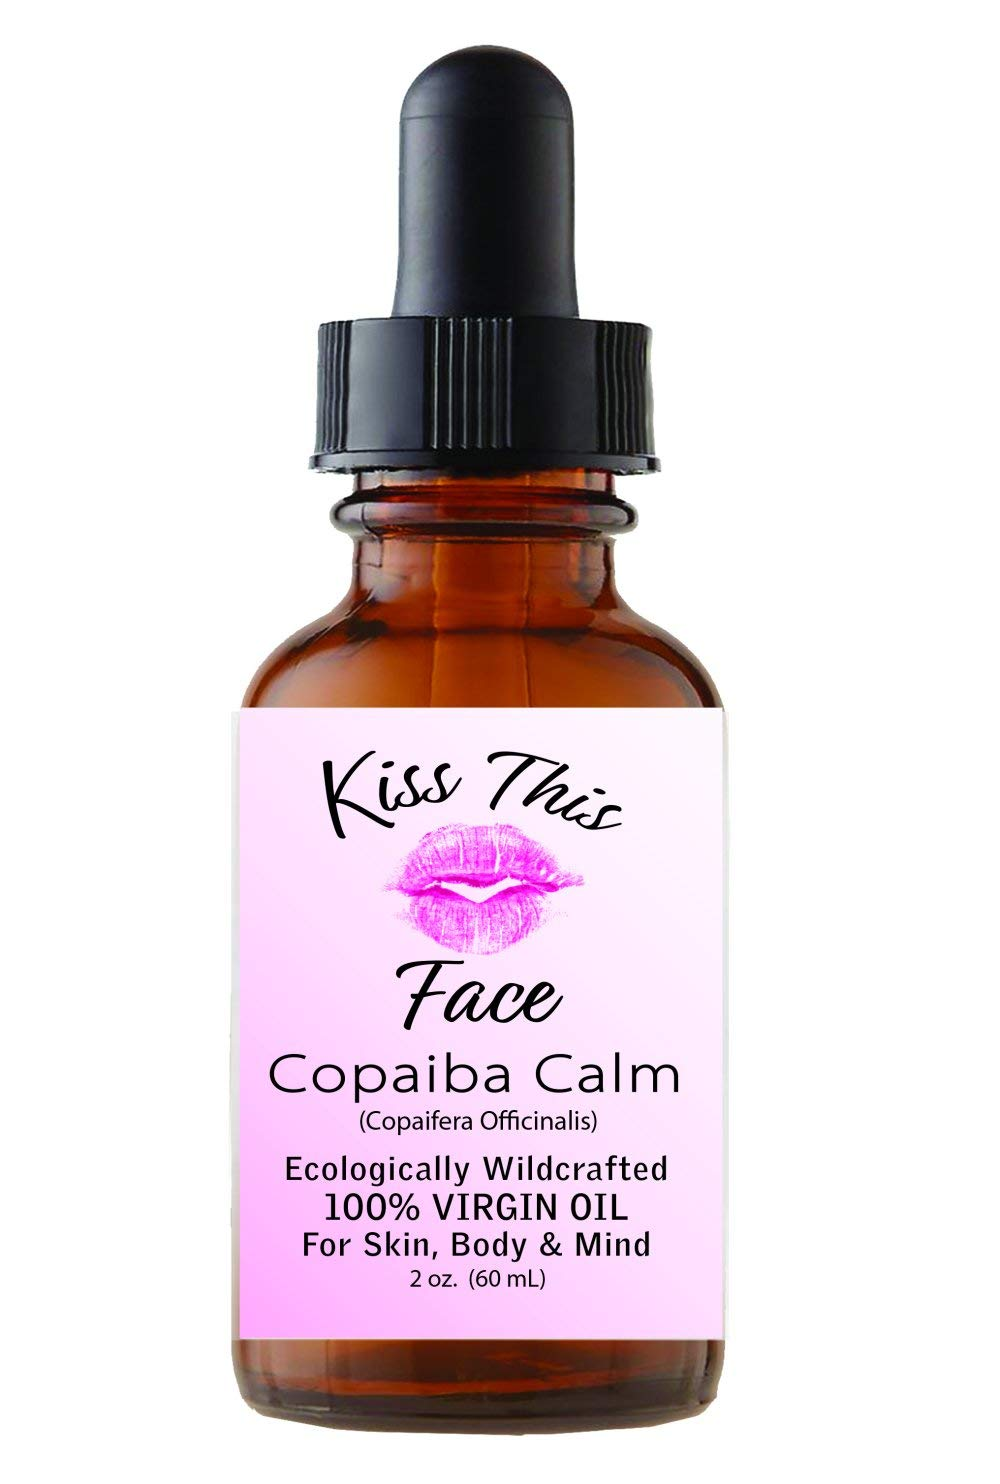 COPAIBA CALM, 100% Virgin Copaiba Oil For Face, Body and Relaxation. Anti-Inflammatory, Anti-Anxiety, Undiluted, Wildcrafted Oil From Brazil. 2 oz Bottle